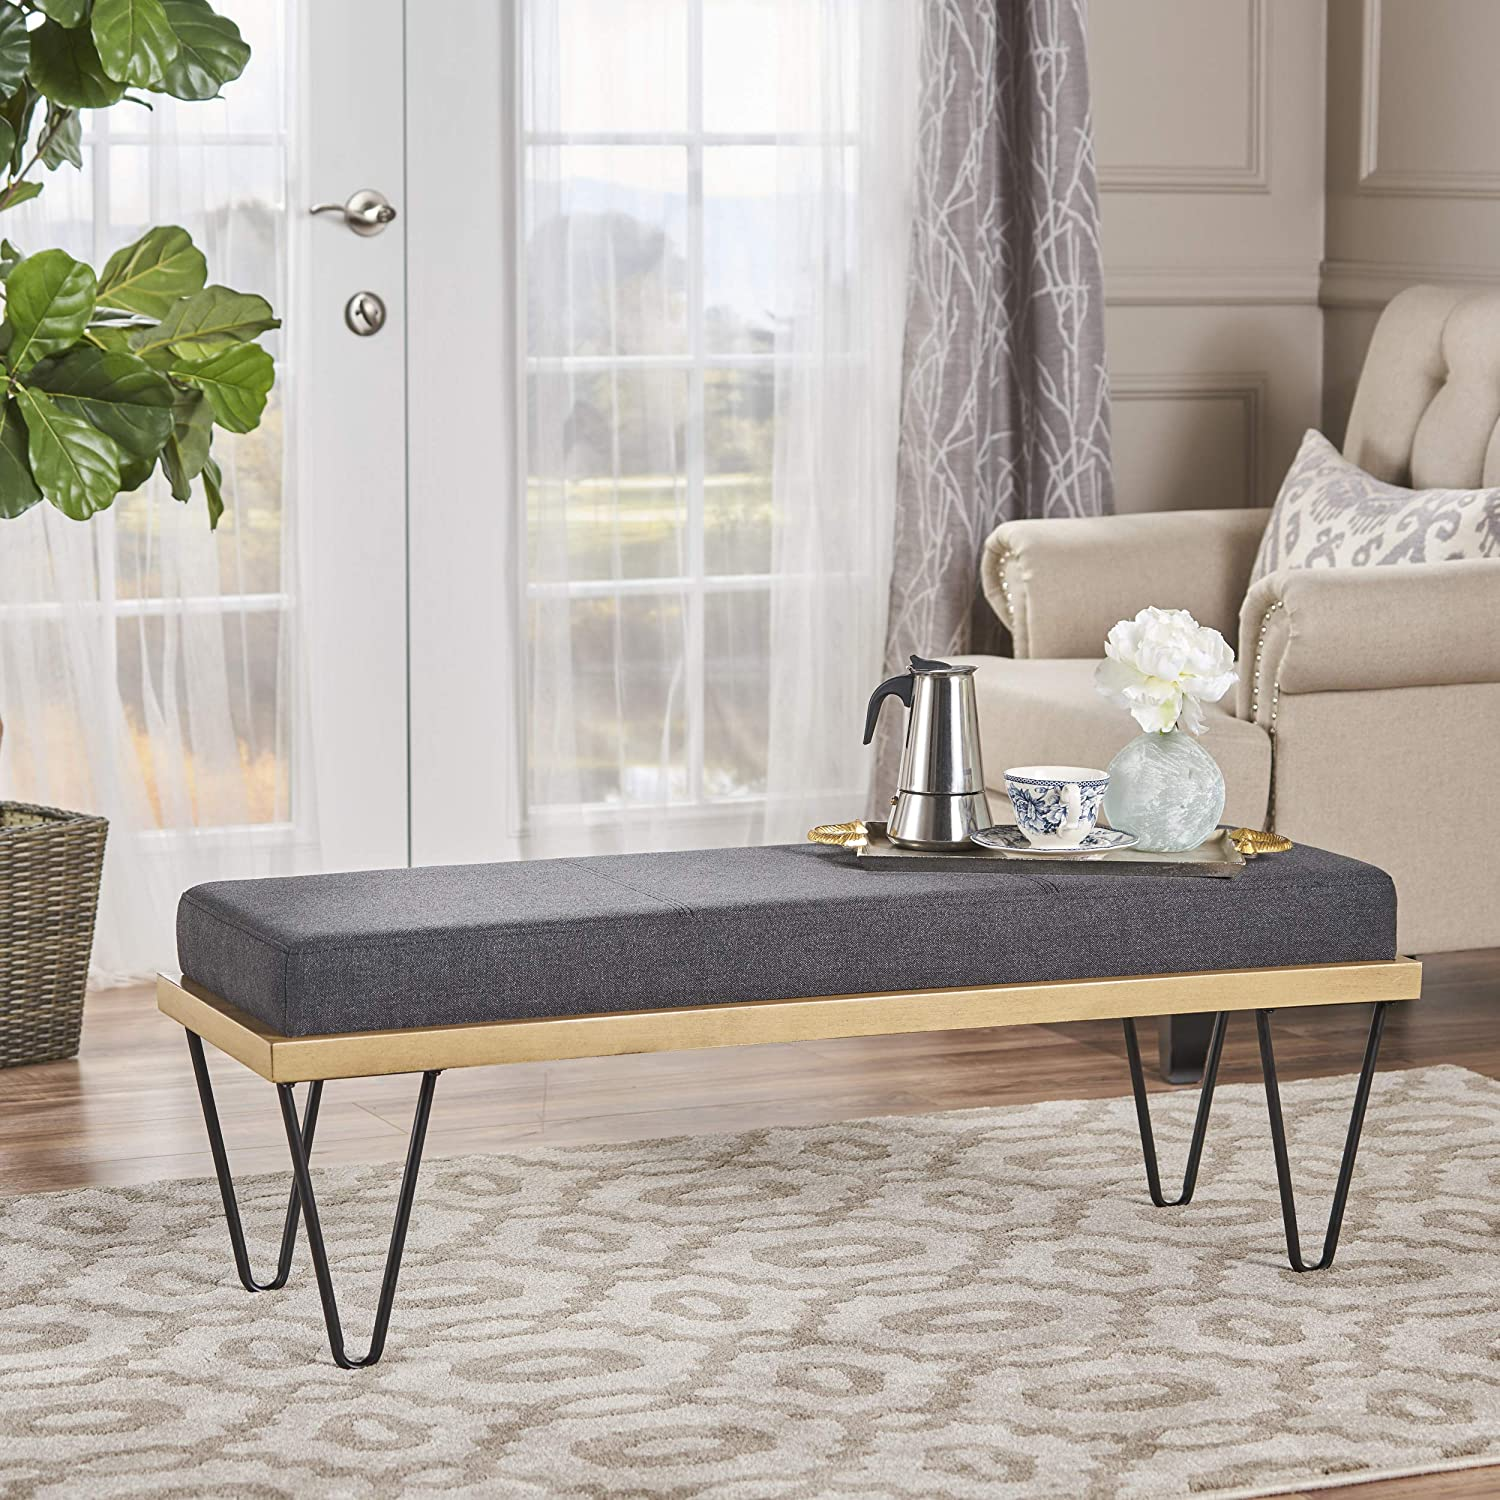 Christopher Knight Home Elaina Bench Perfect for Dining Table or Entry Way Danish, Minimal, Mid Century Modern Design Hairpin Leg Fabric, Dark Charcoal